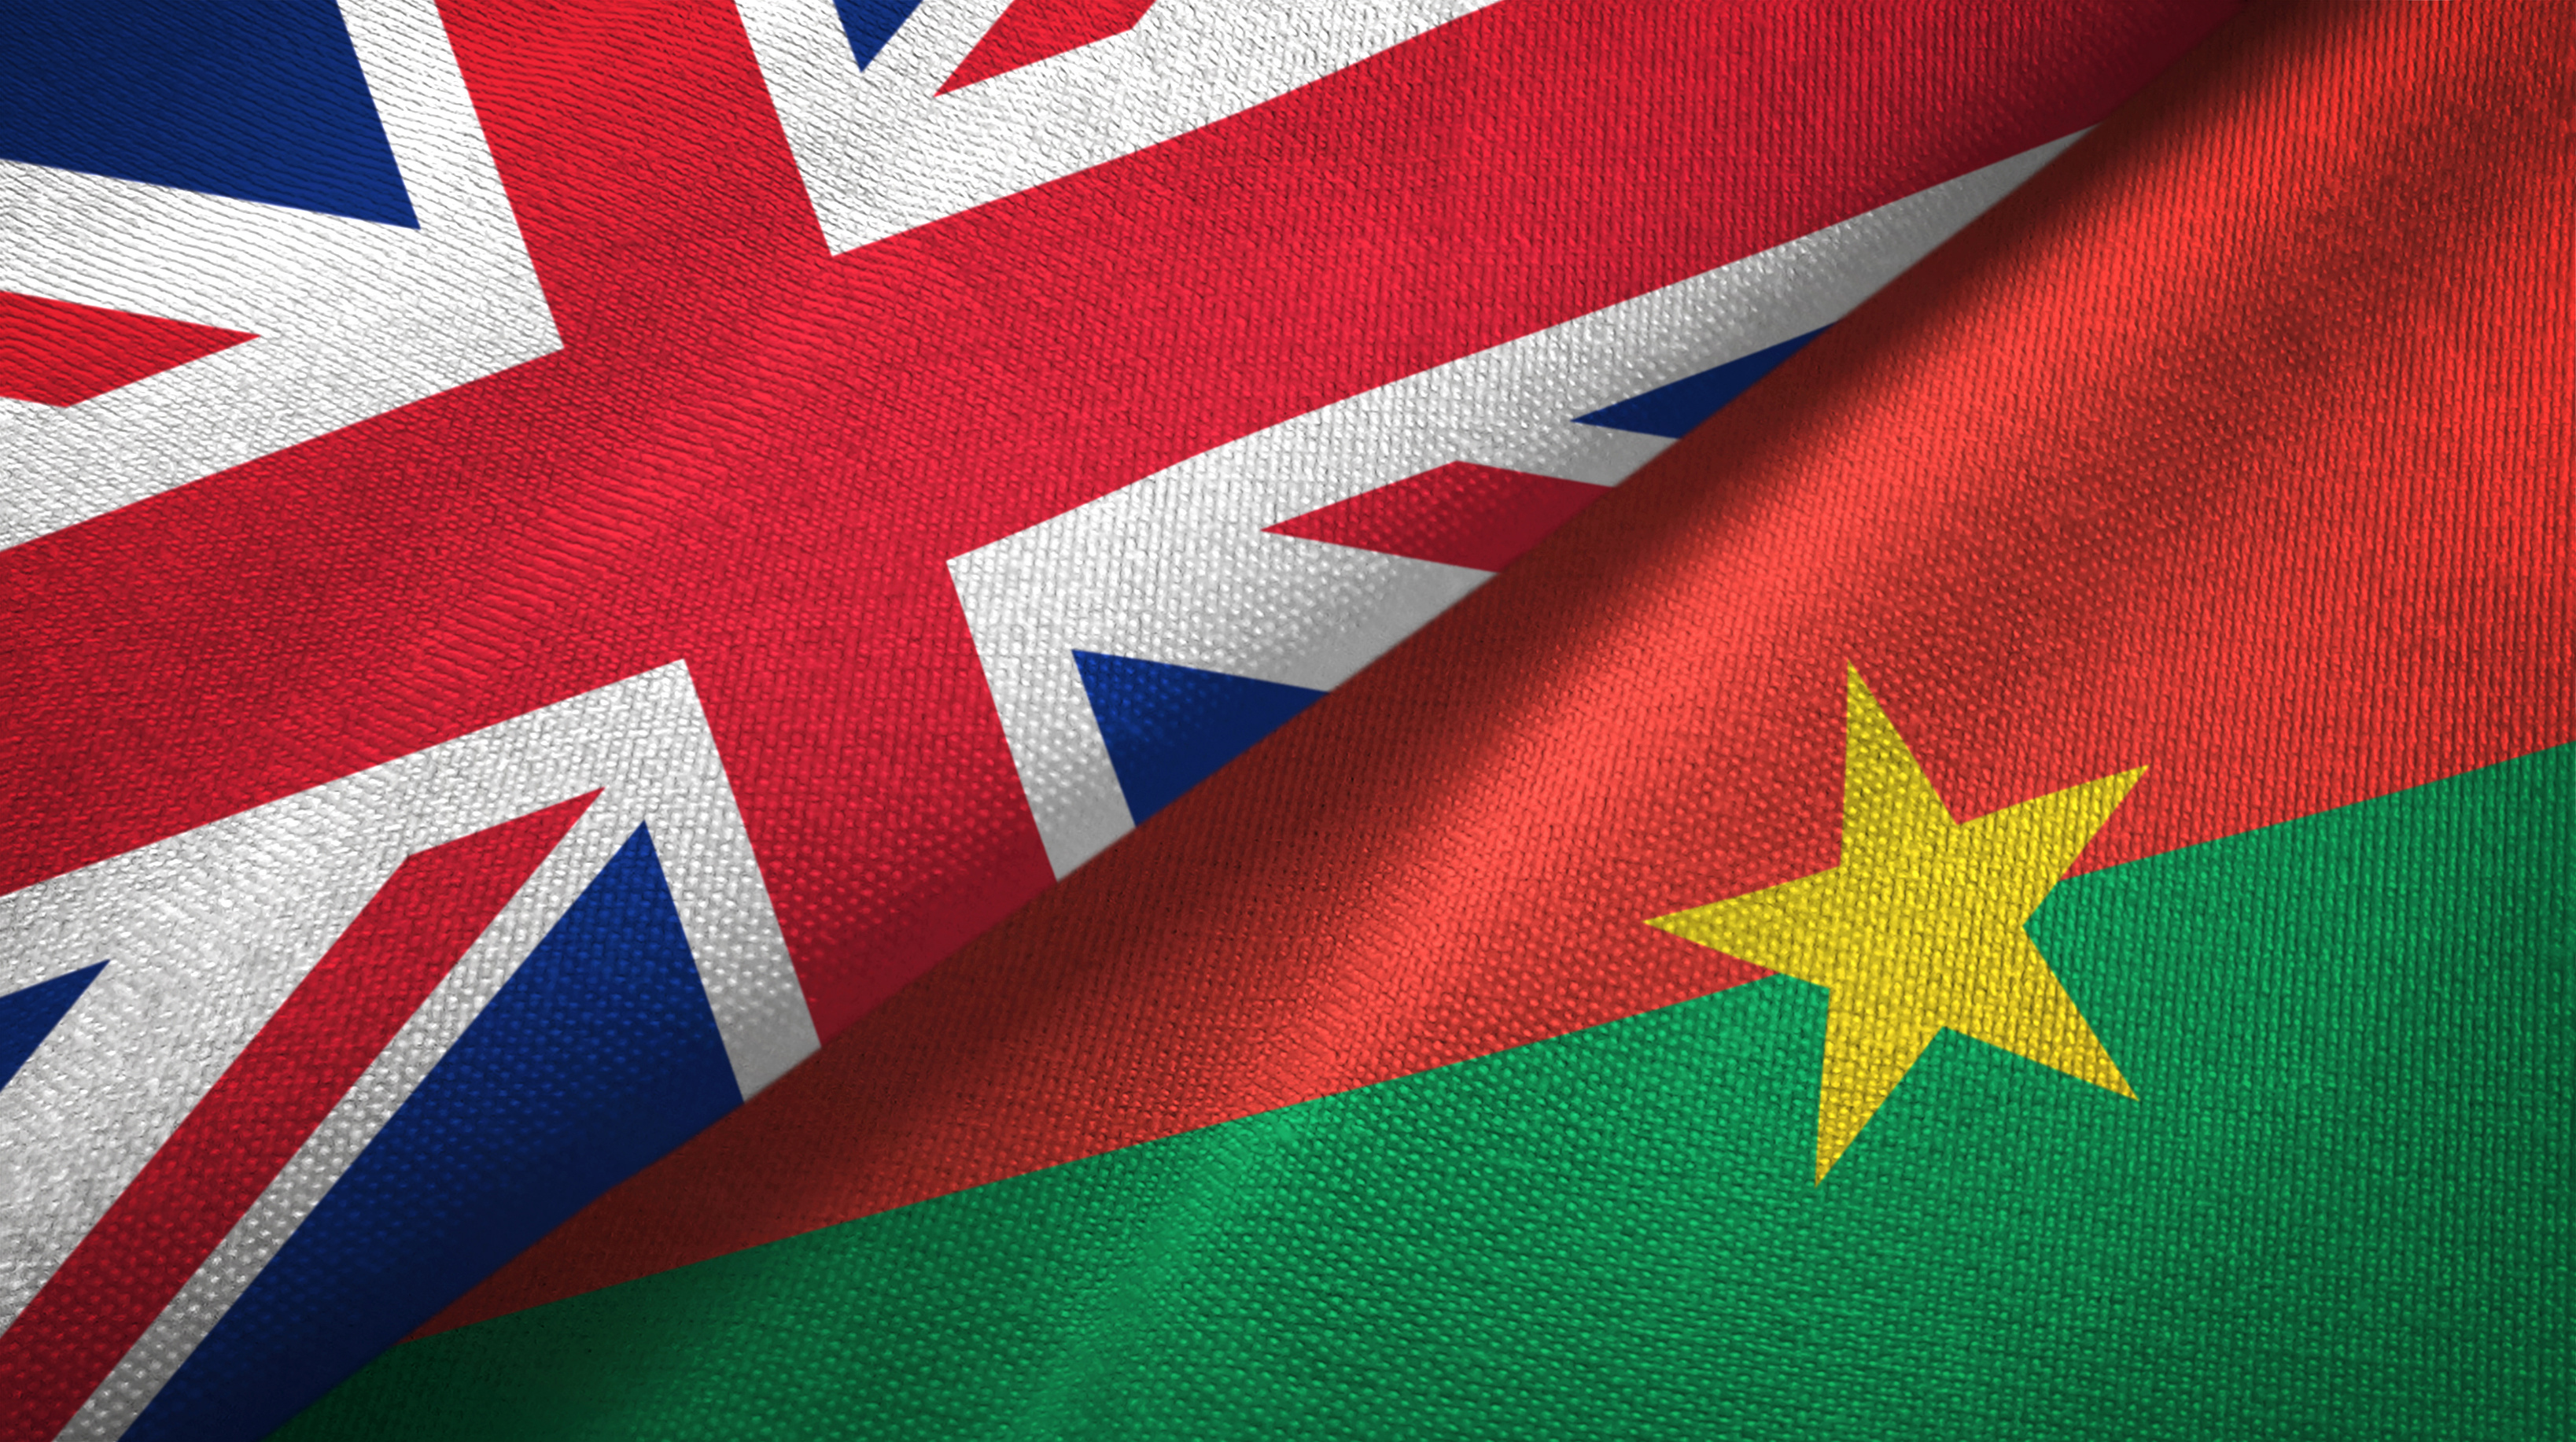 Westminster signs Memorandum of Understanding with Burkina Faso for provision of Airport Security Solutions